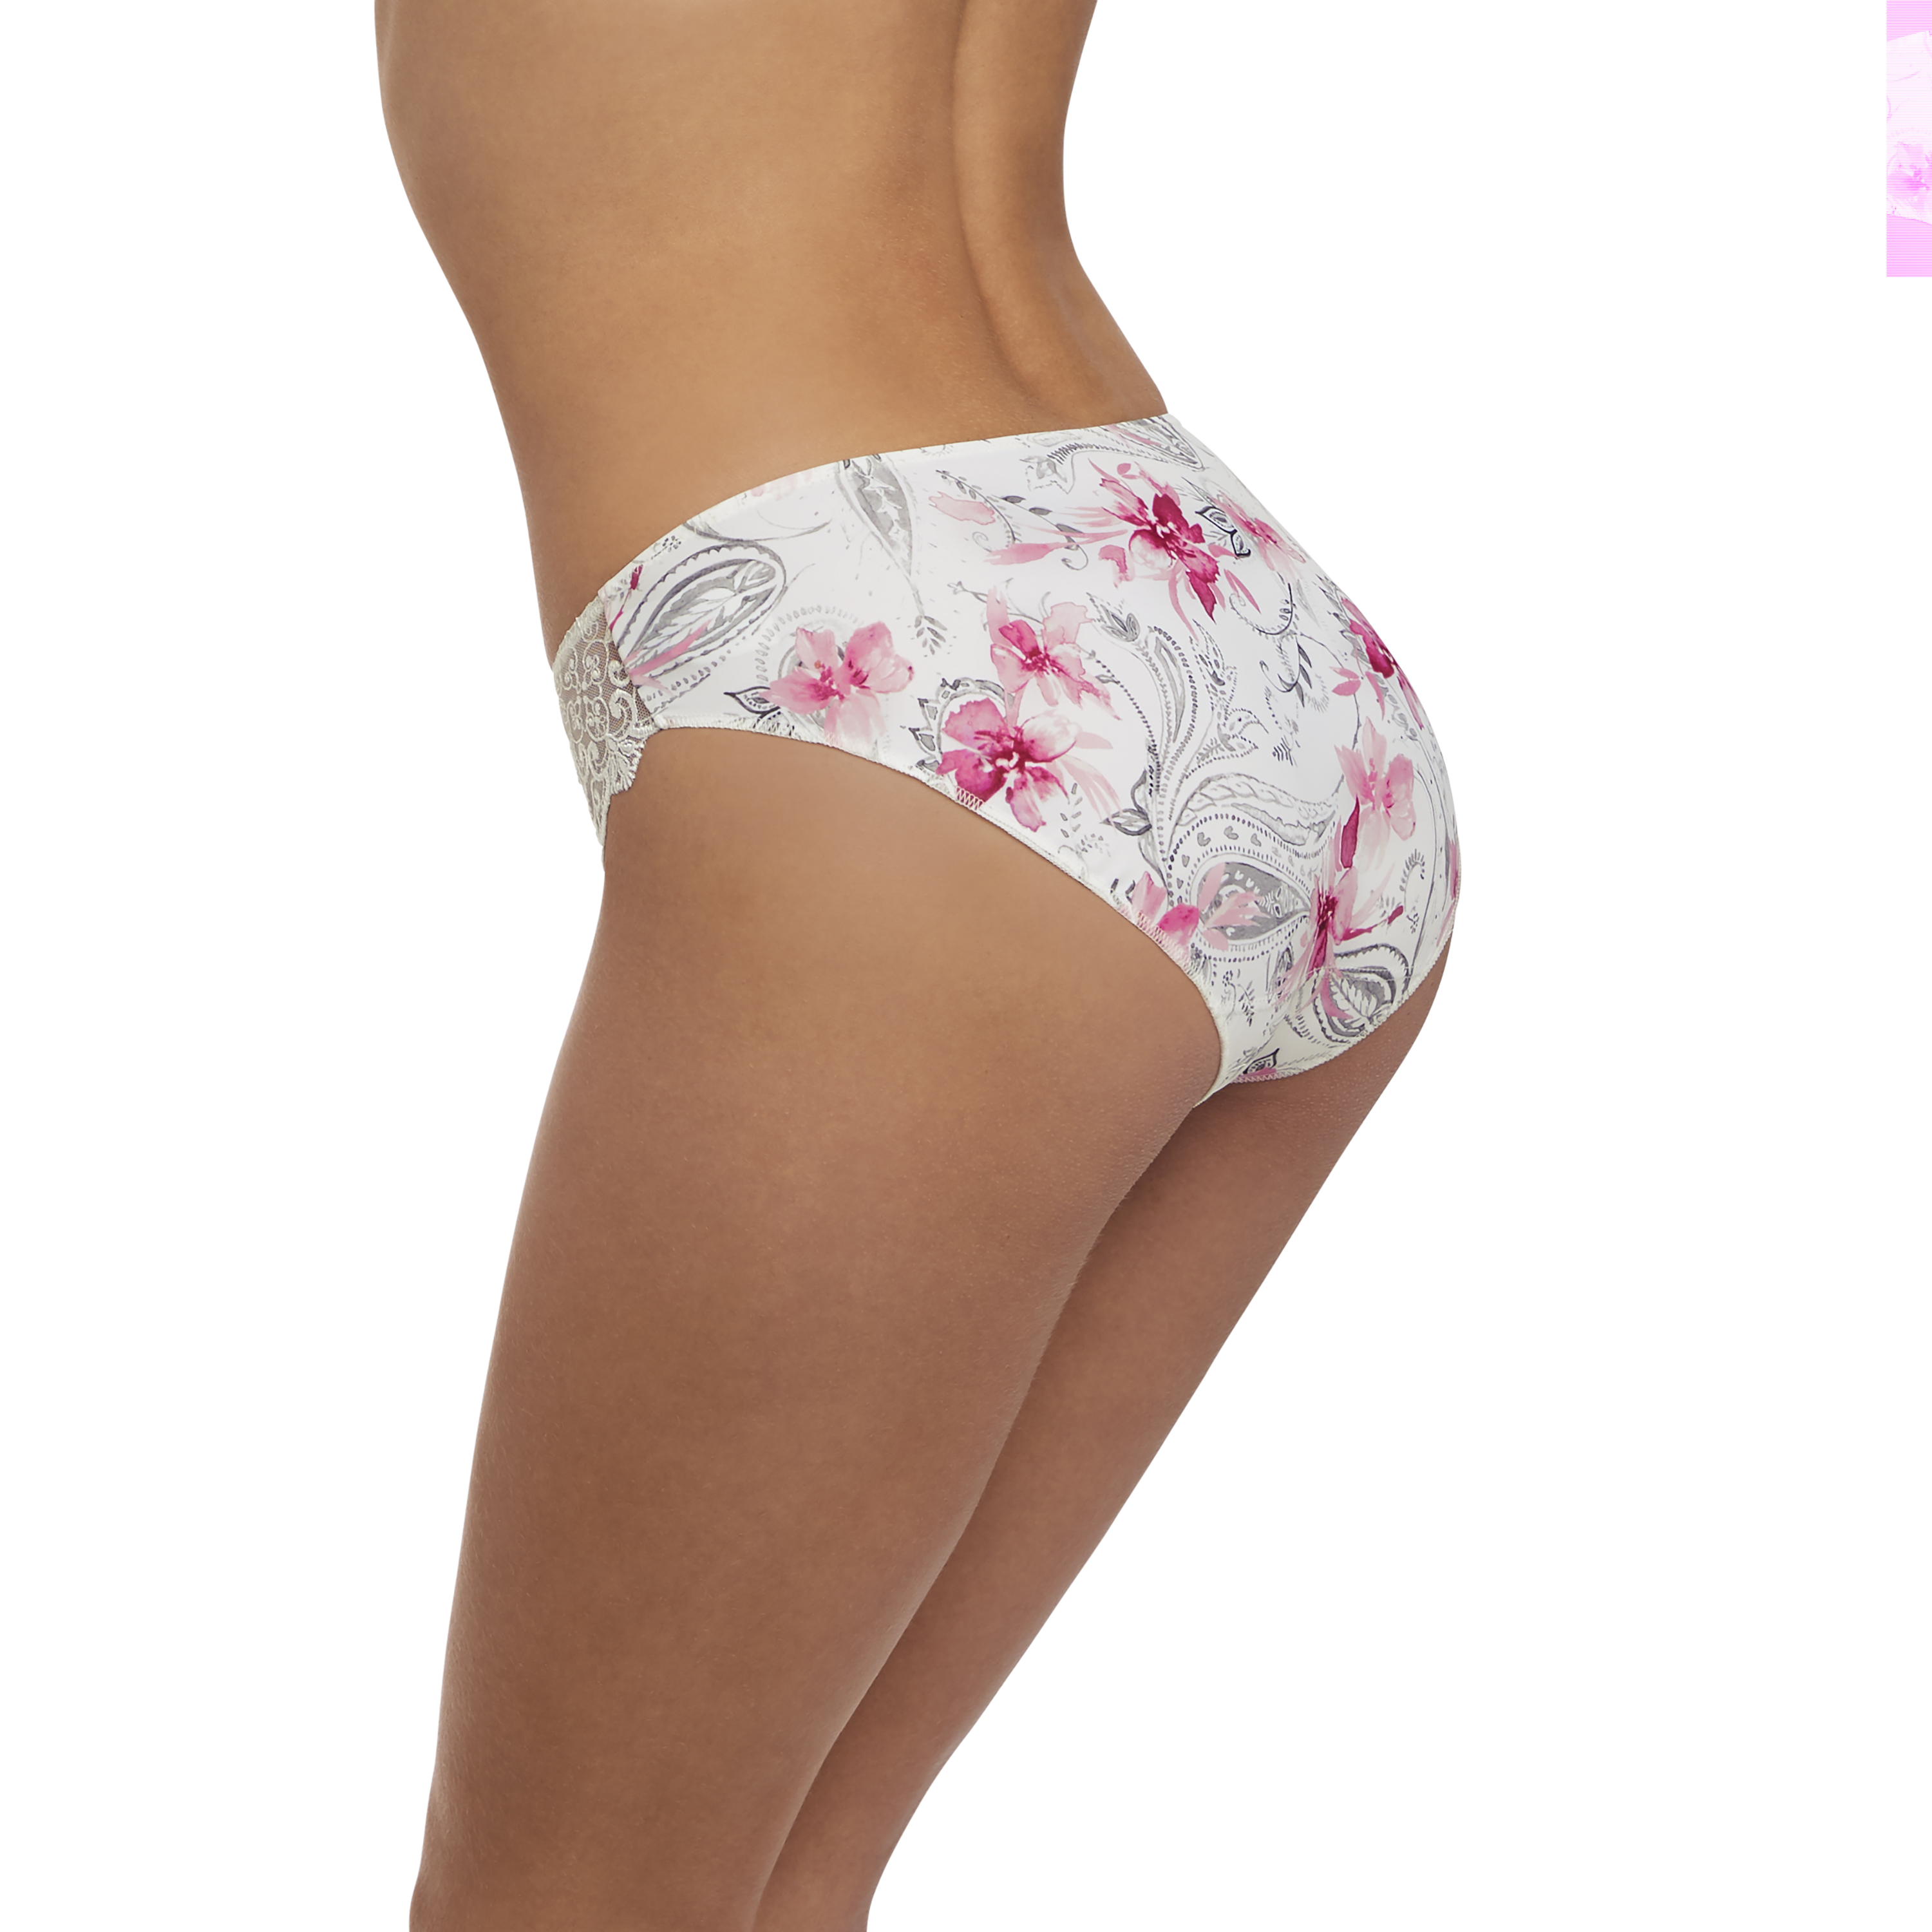 Fantasie Harriet White brief